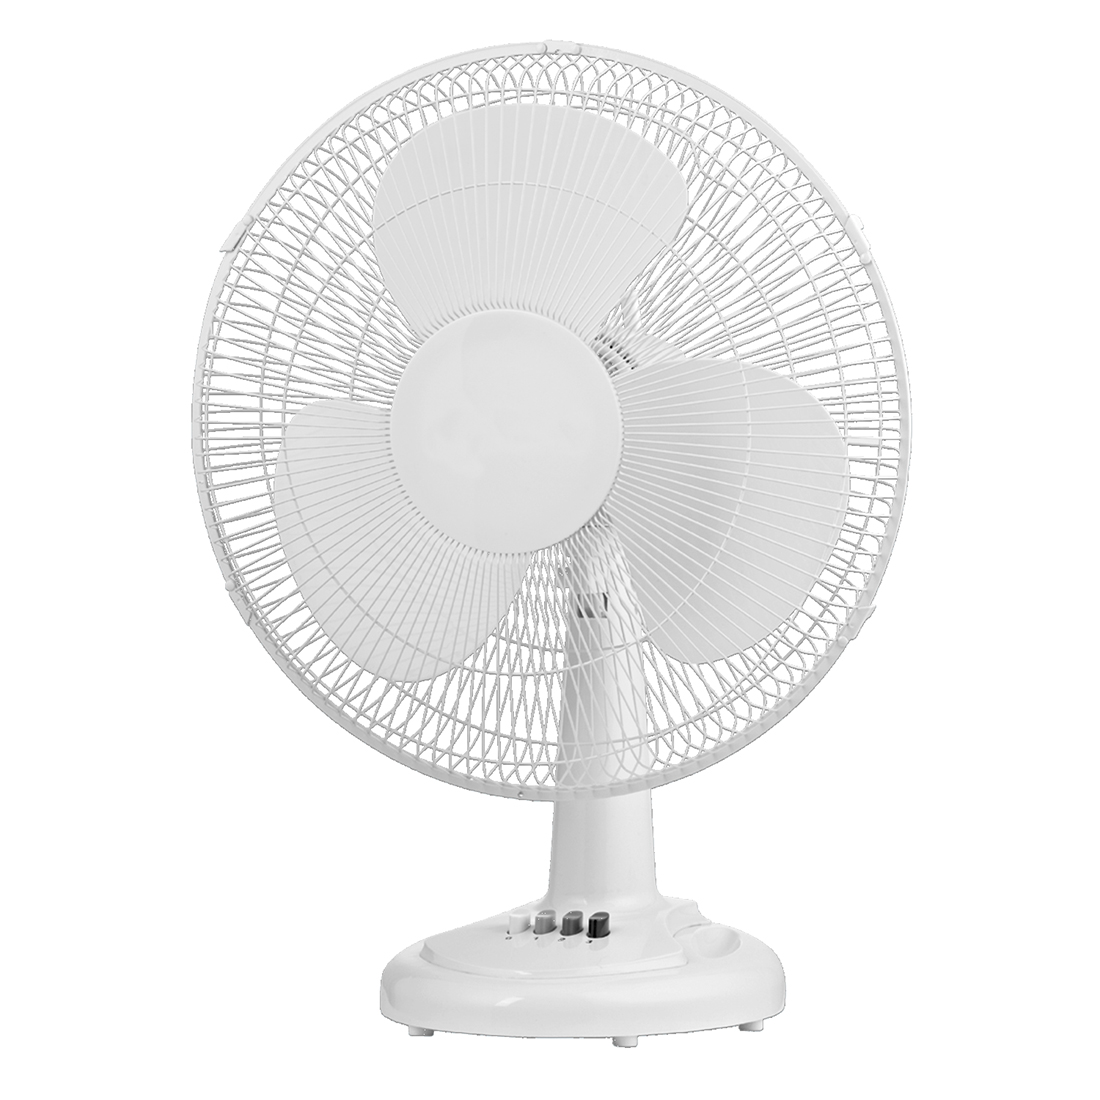 "View DESK FAN 16 INCH 3 SPEED OSCILLATING ADJUSTABLE ""ETL APPROVED"""